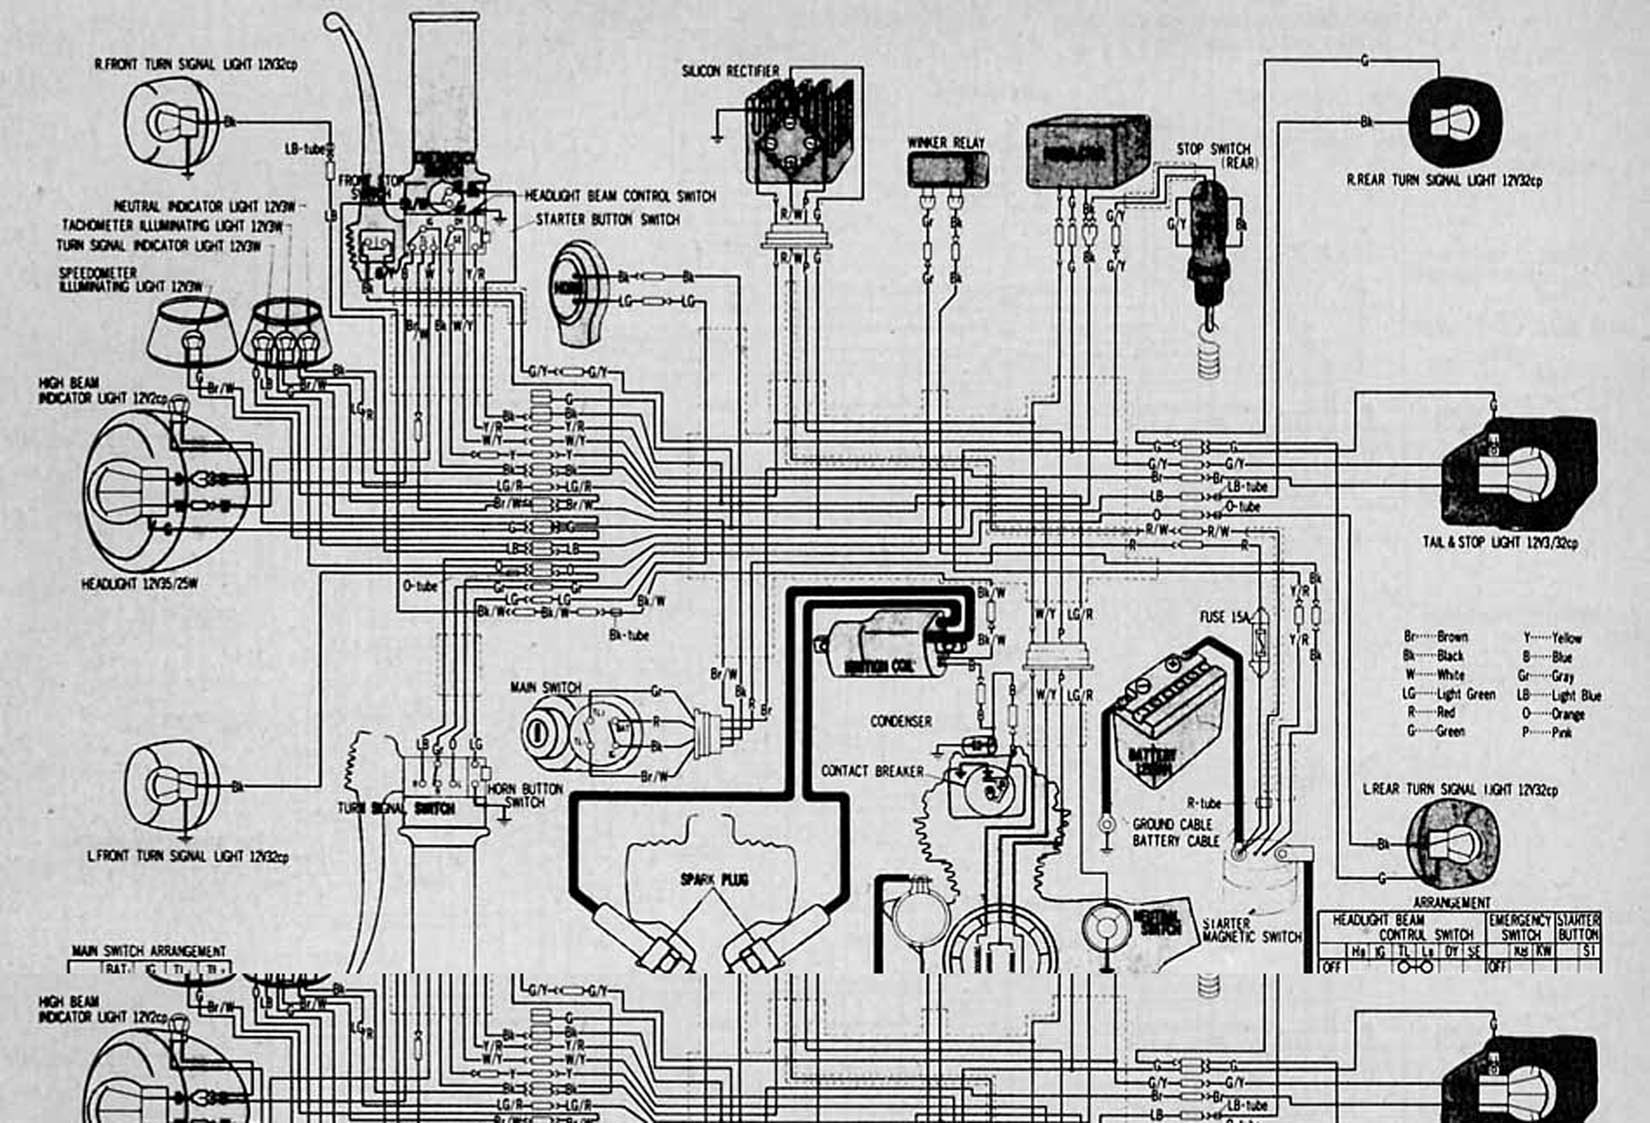 14529d1333841707 first bike cb200 honda cb cl200 electrical wiring diagram cb360 wiring diagram yamaha rd 350 wiring diagram \u2022 wiring 1974 cb360 wiring diagram at aneh.co